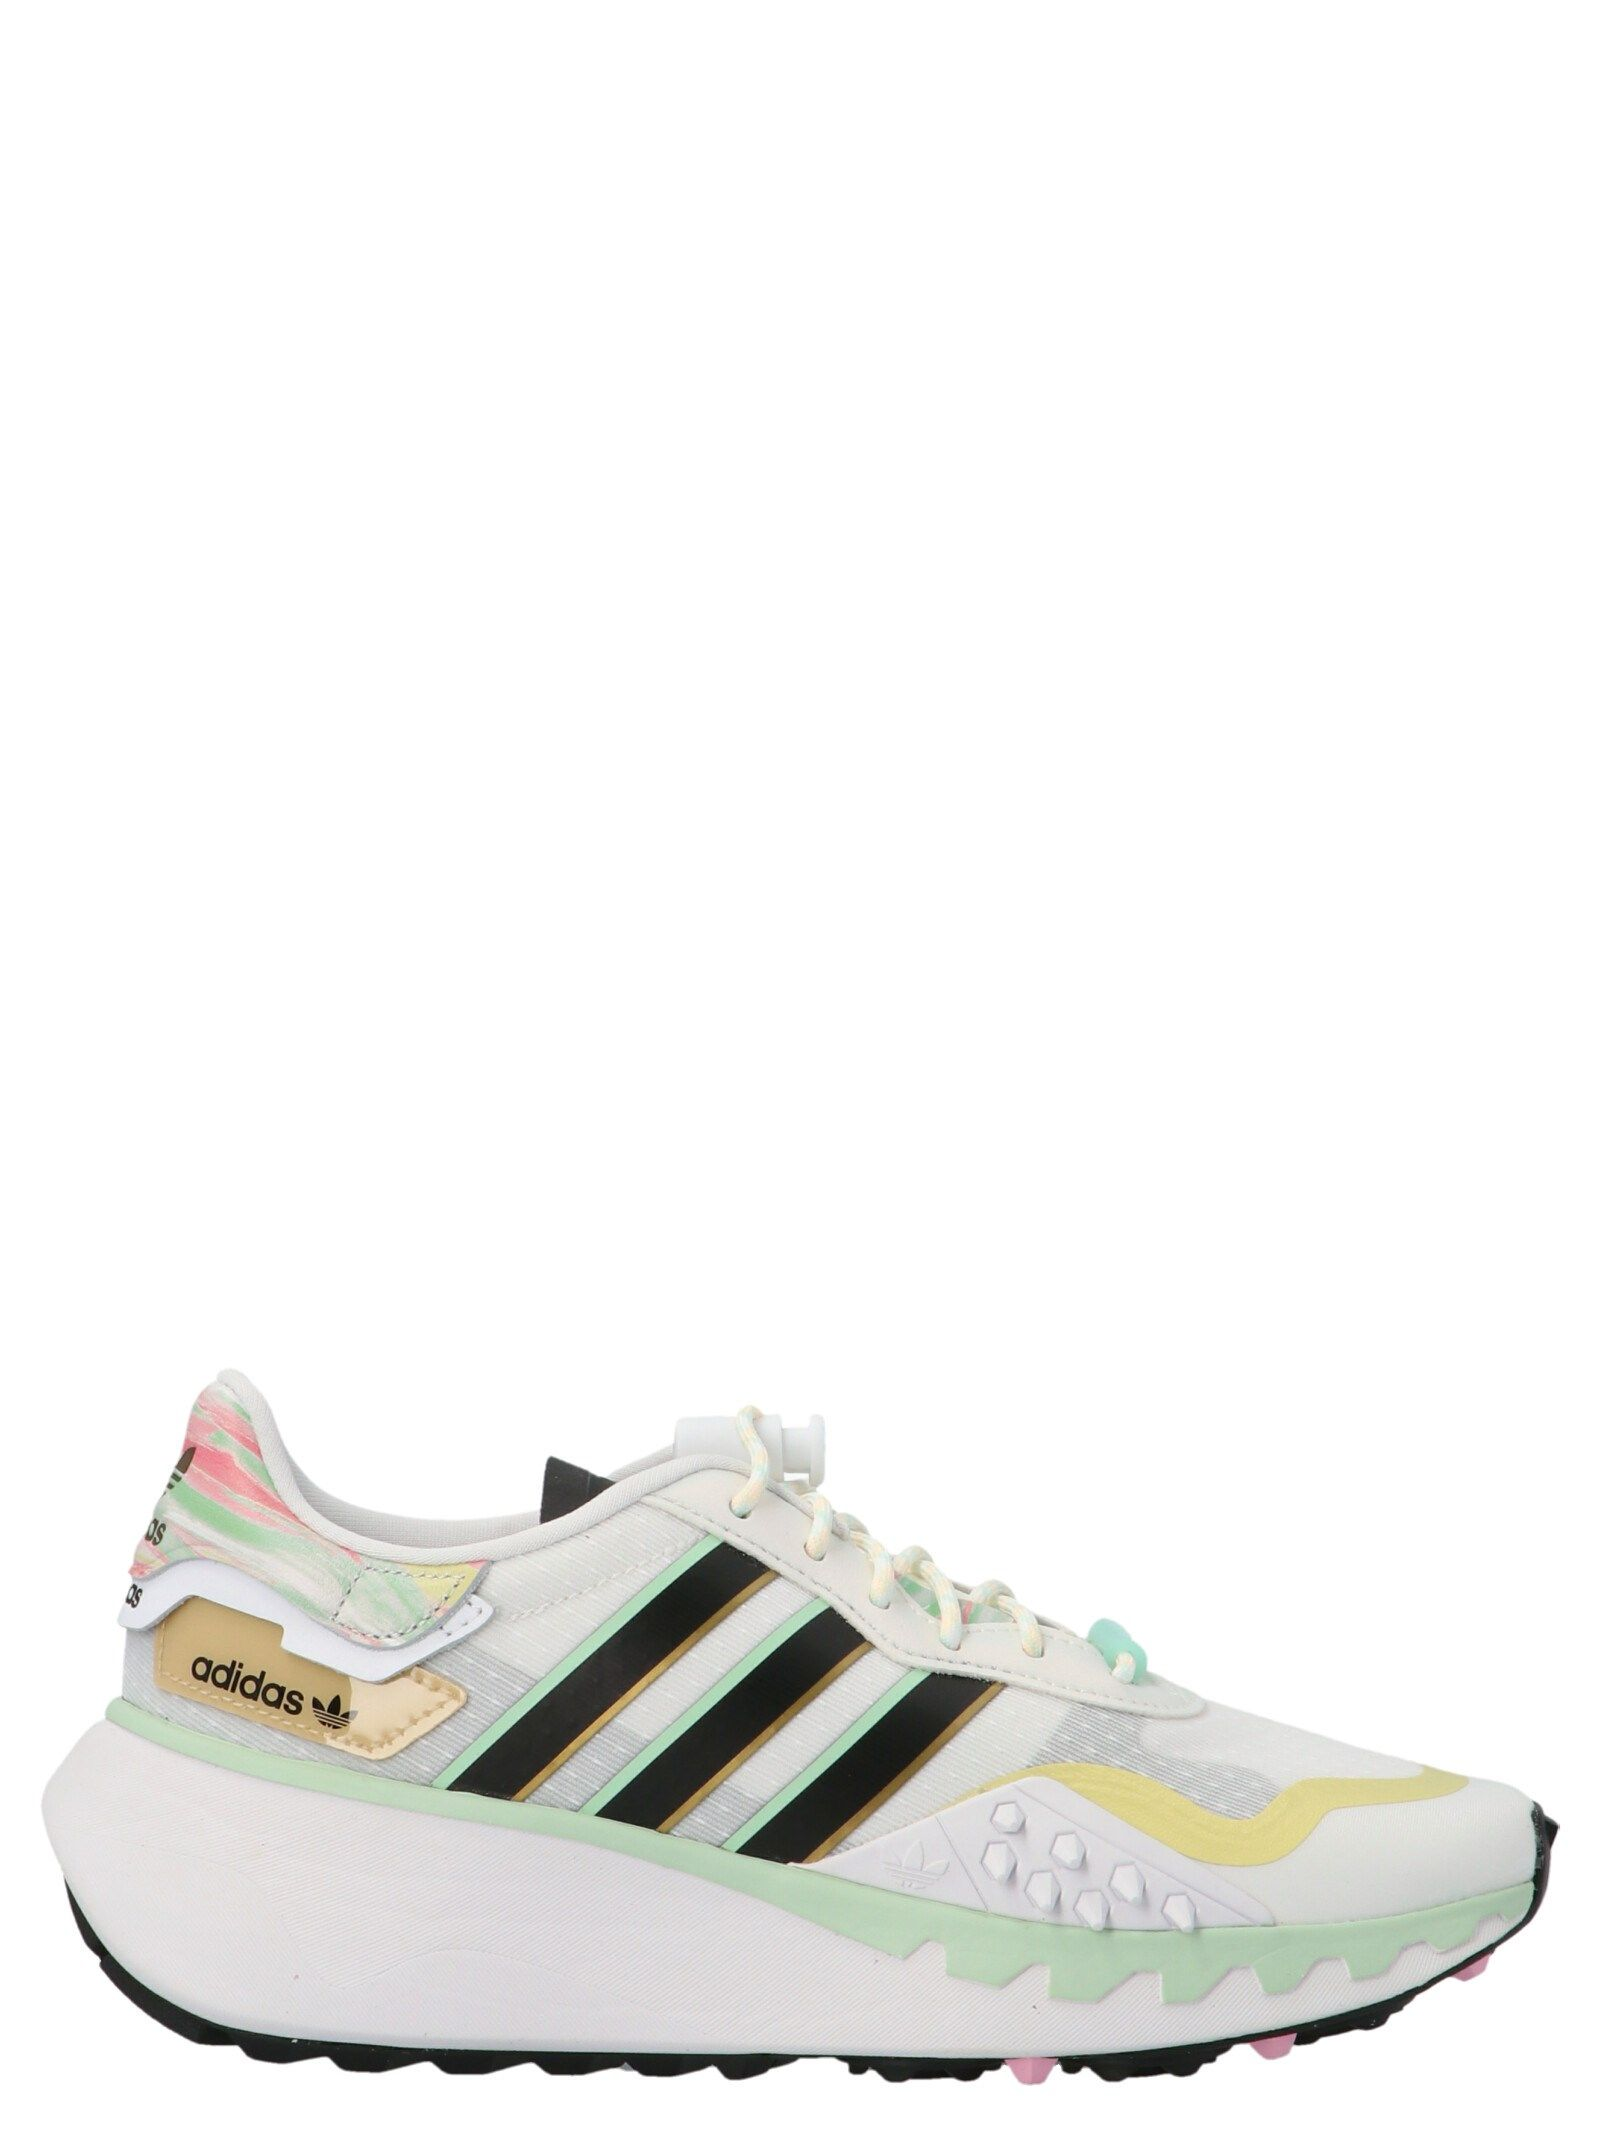 Adidas Originals Sneakers ADIDAS MEN'S FY6731 WHITE OTHER MATERIALS SNEAKERS